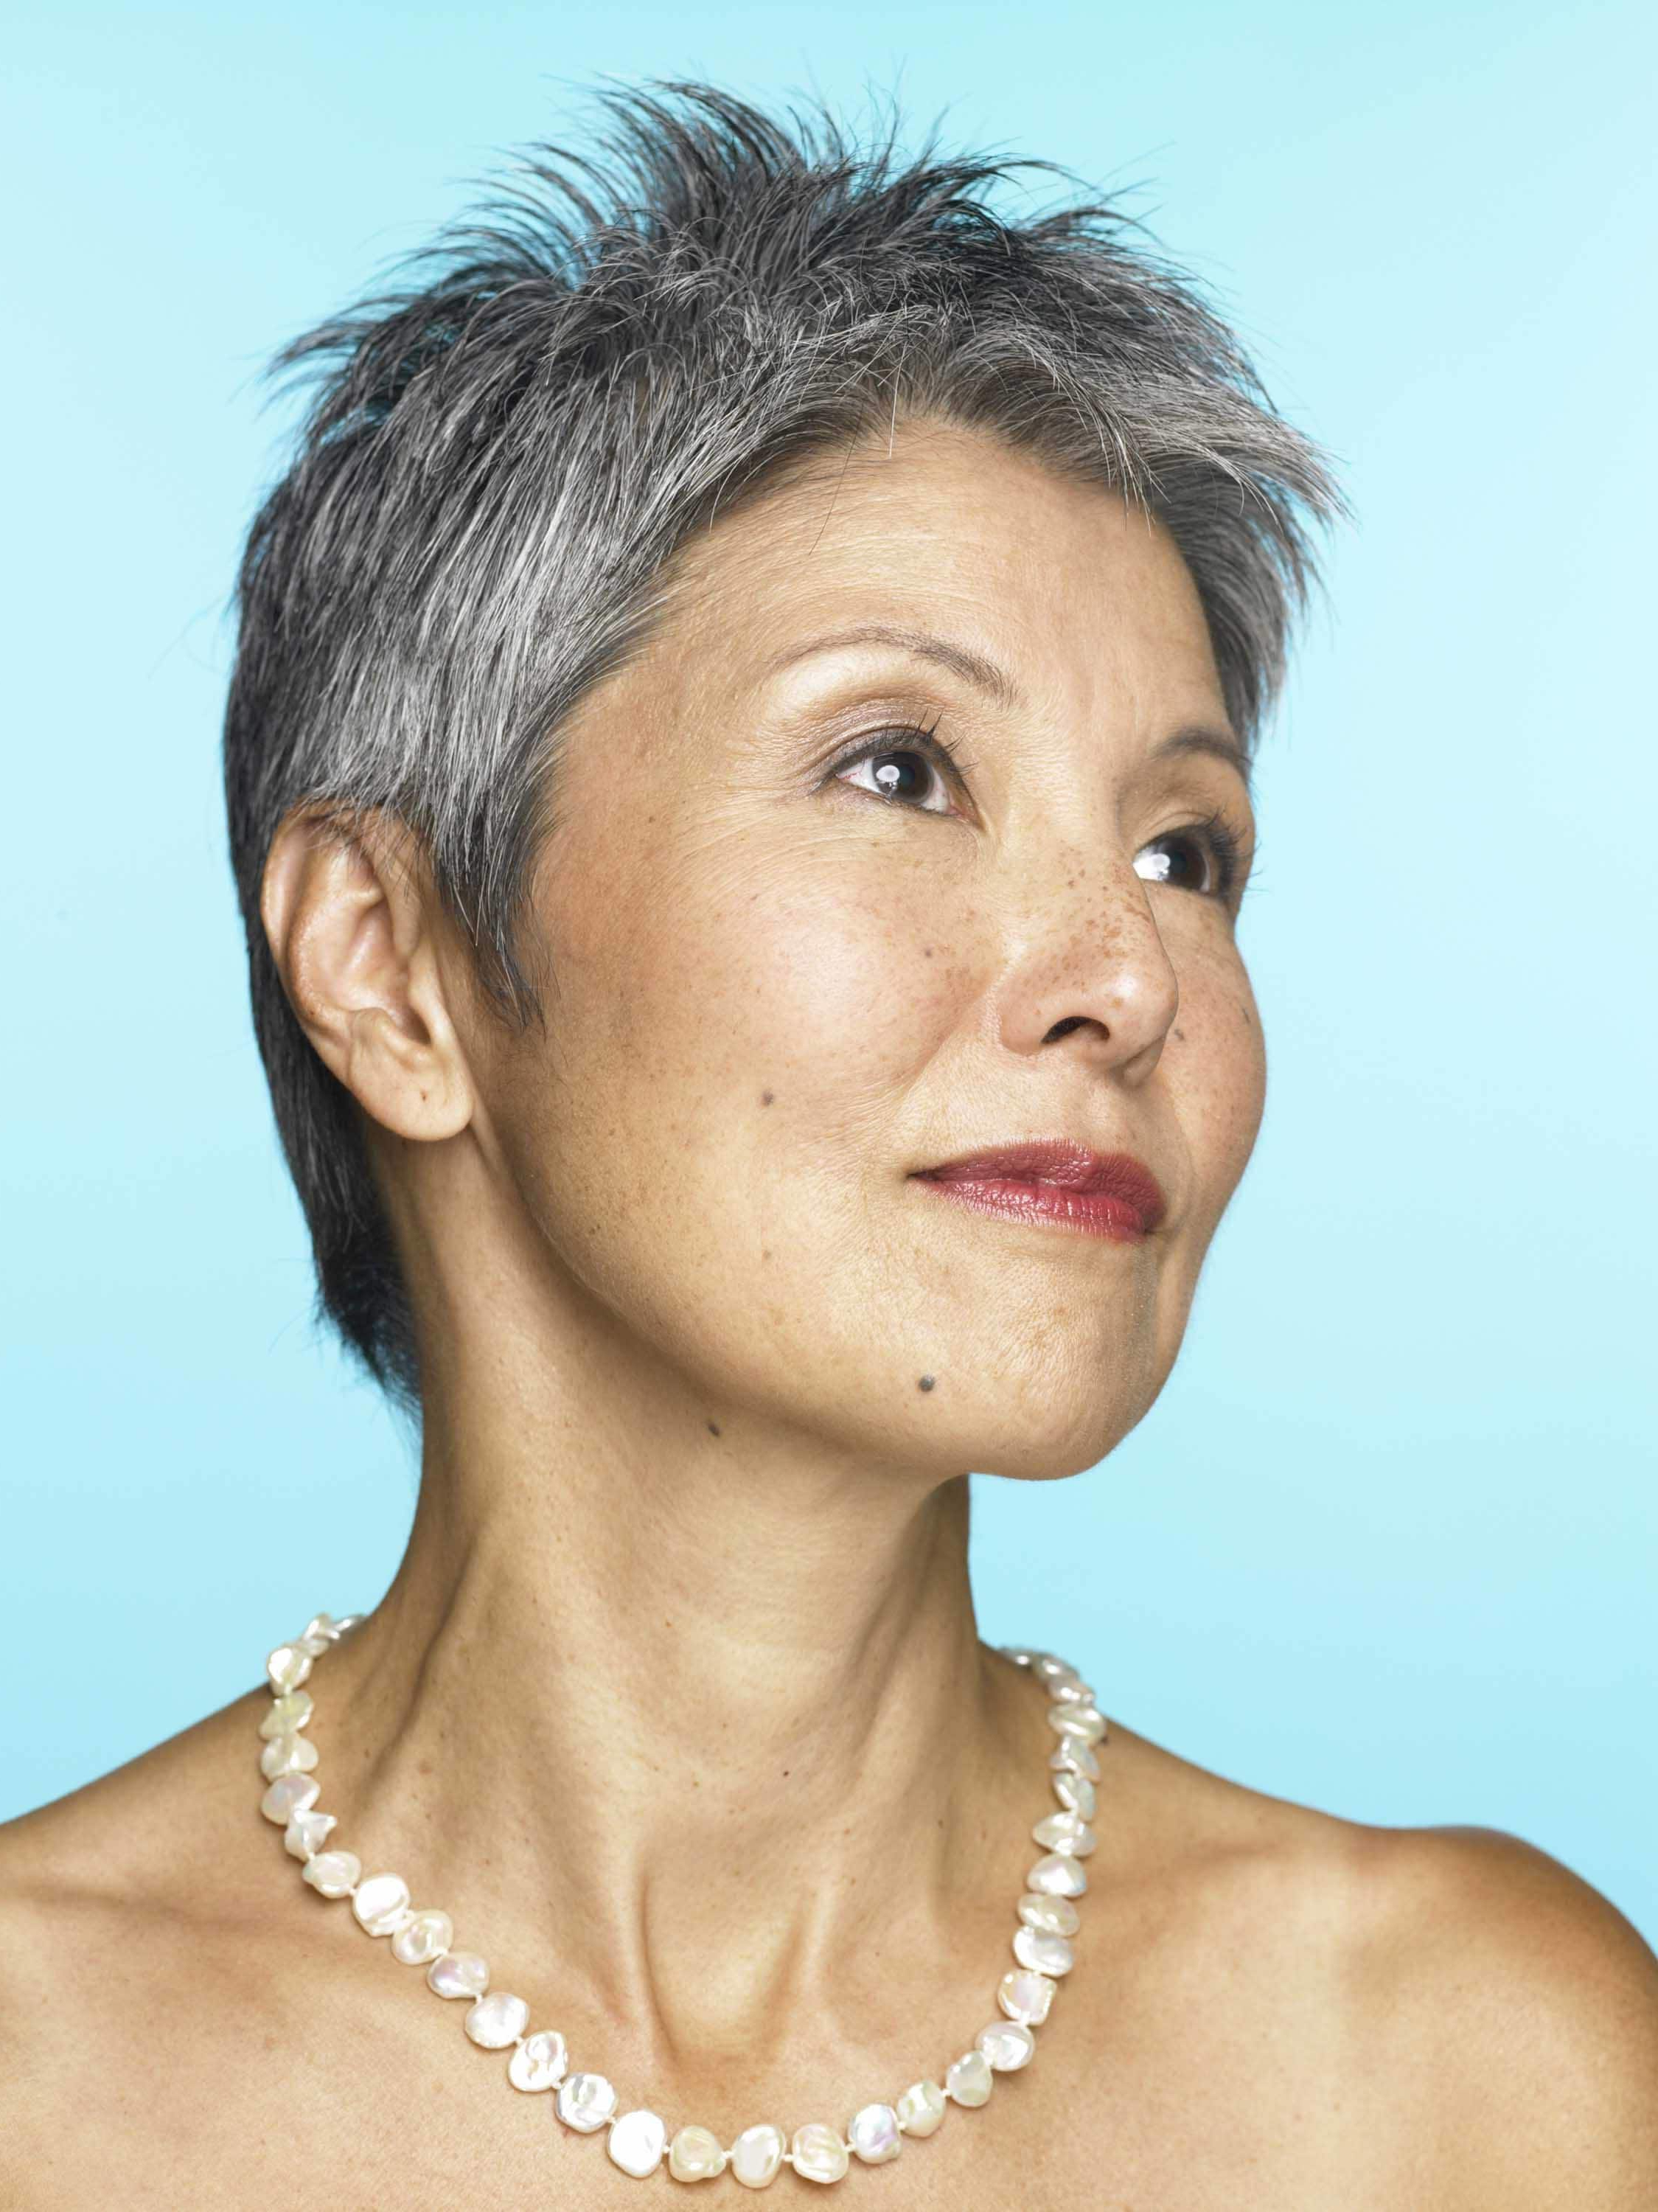 10 Chic Short Gray Hair Looks For Older Women In Short Haircuts For Salt And Pepper Hair (View 1 of 25)